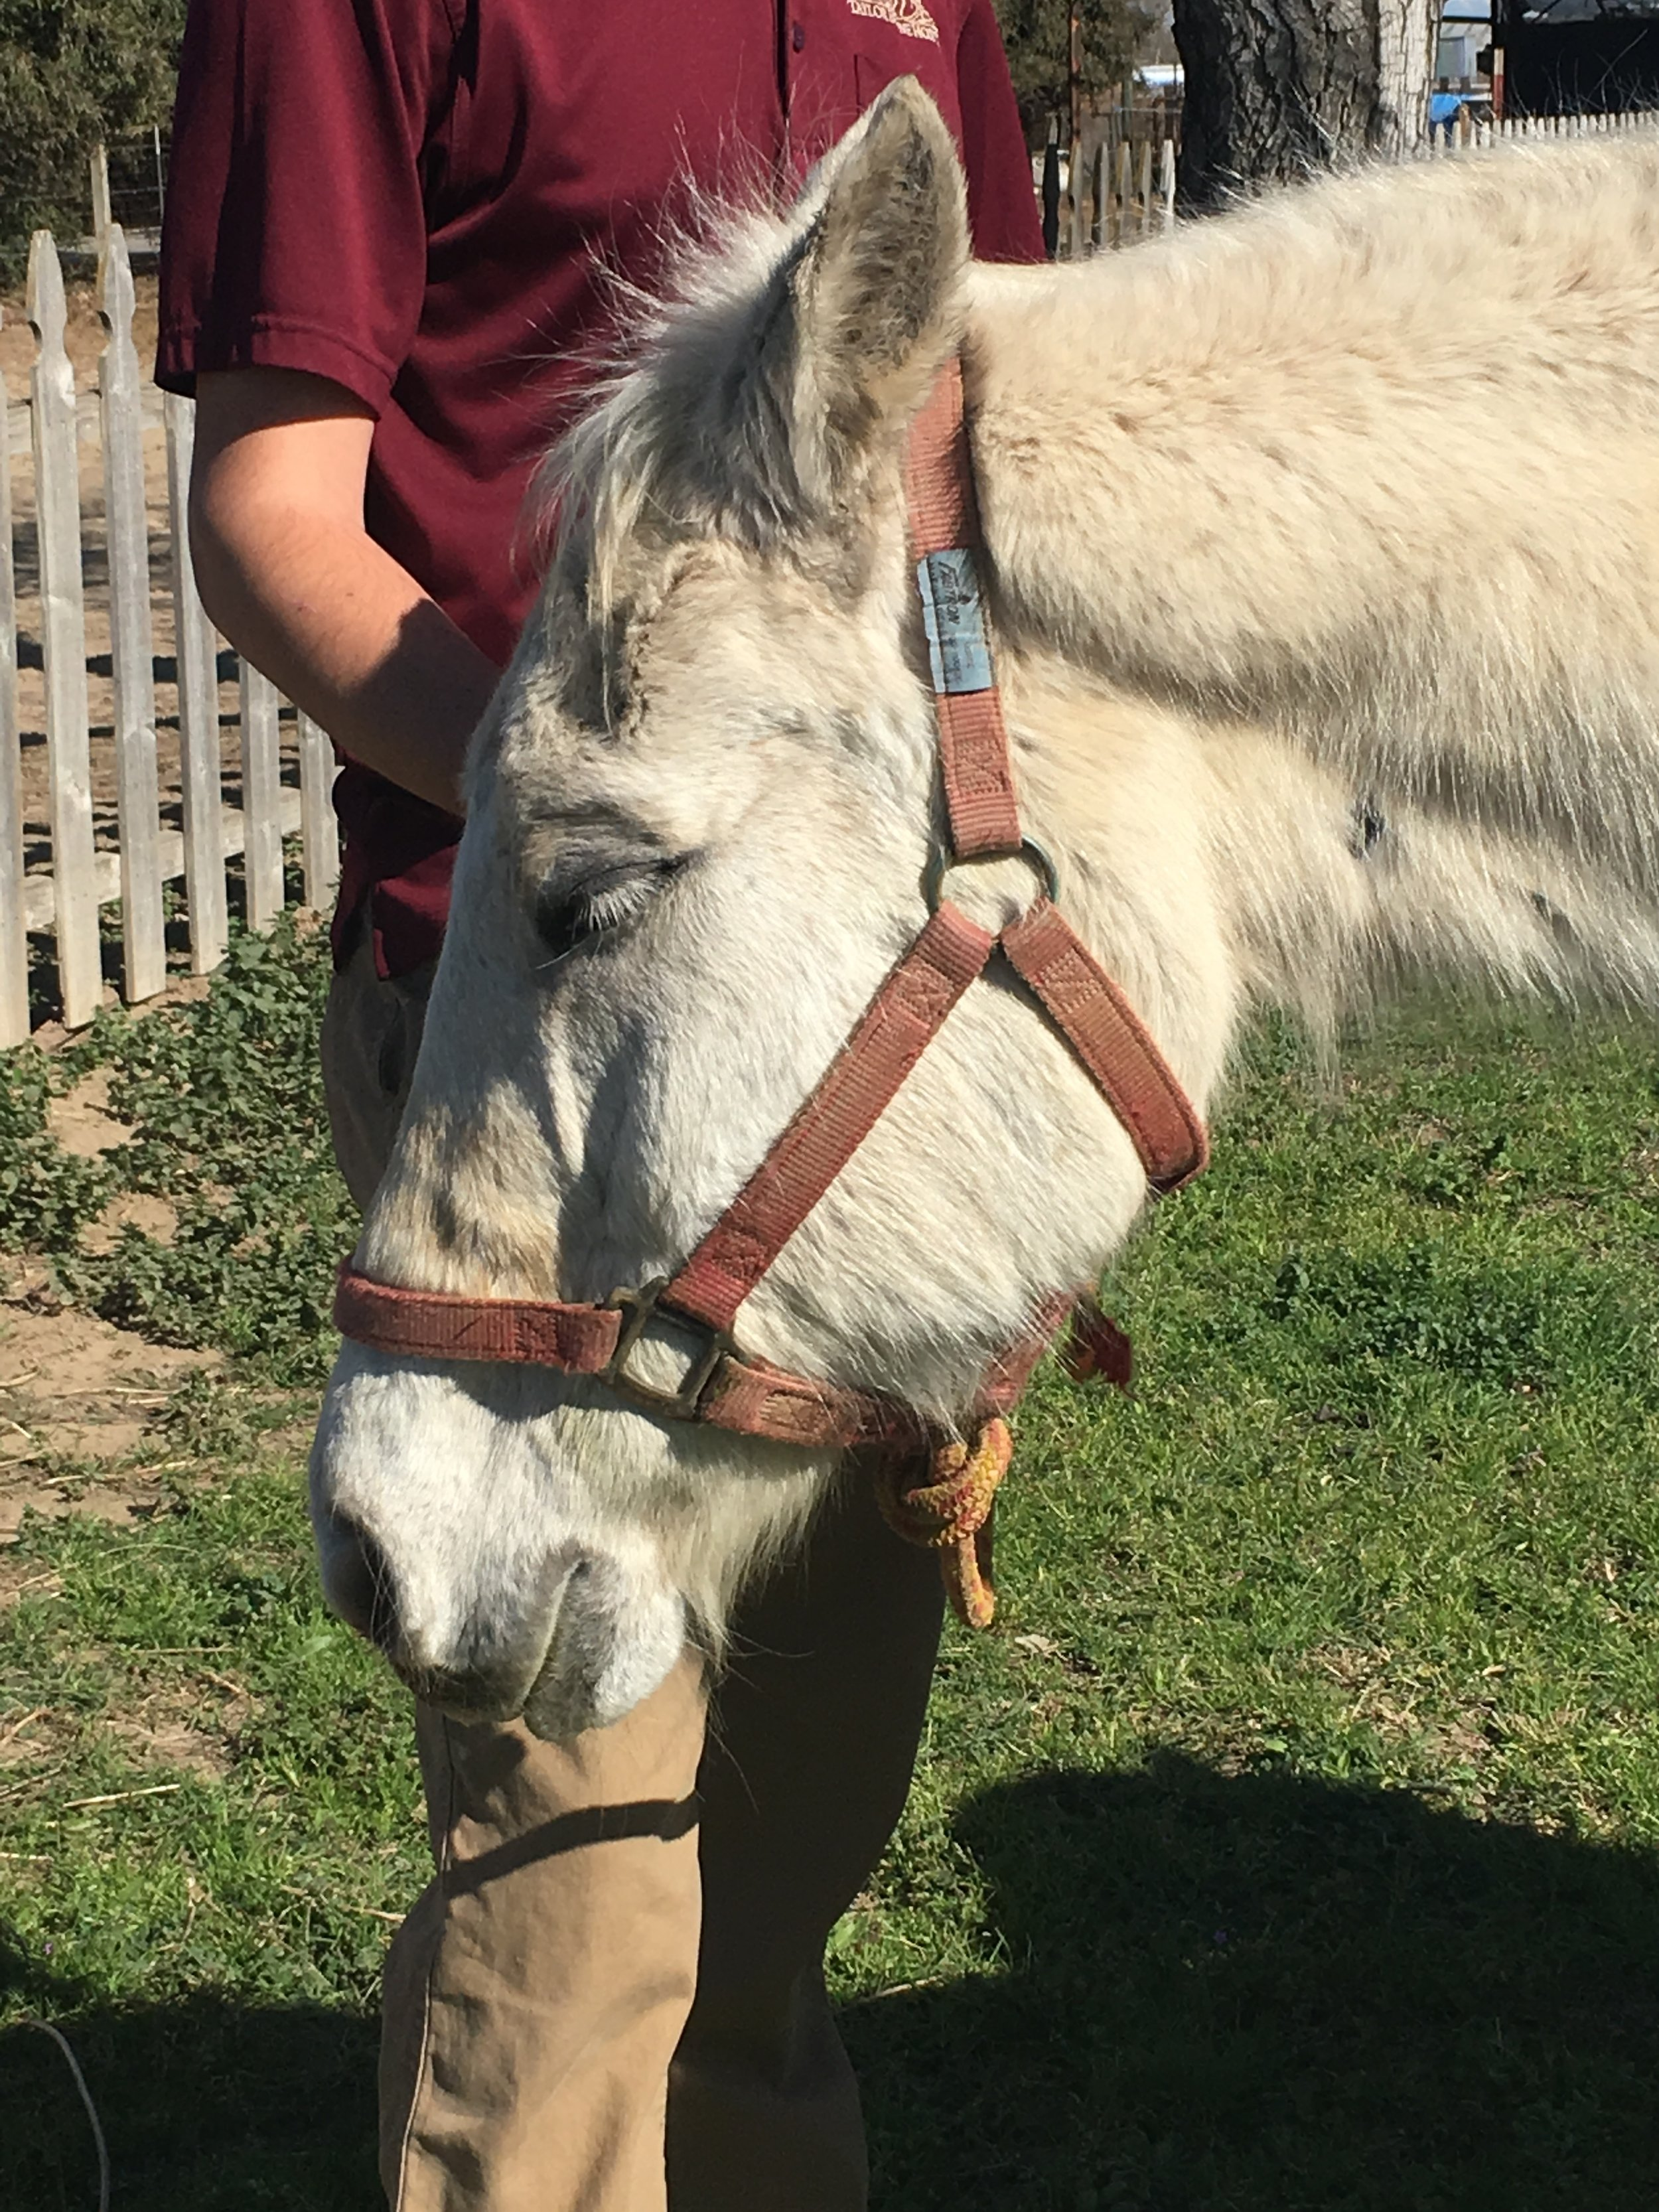 Sweet William, formerly known as Sheets, when we first met him through our Helping Horses at Home Program in late February 2018. He has since joined the Blue Horse Rescue family.